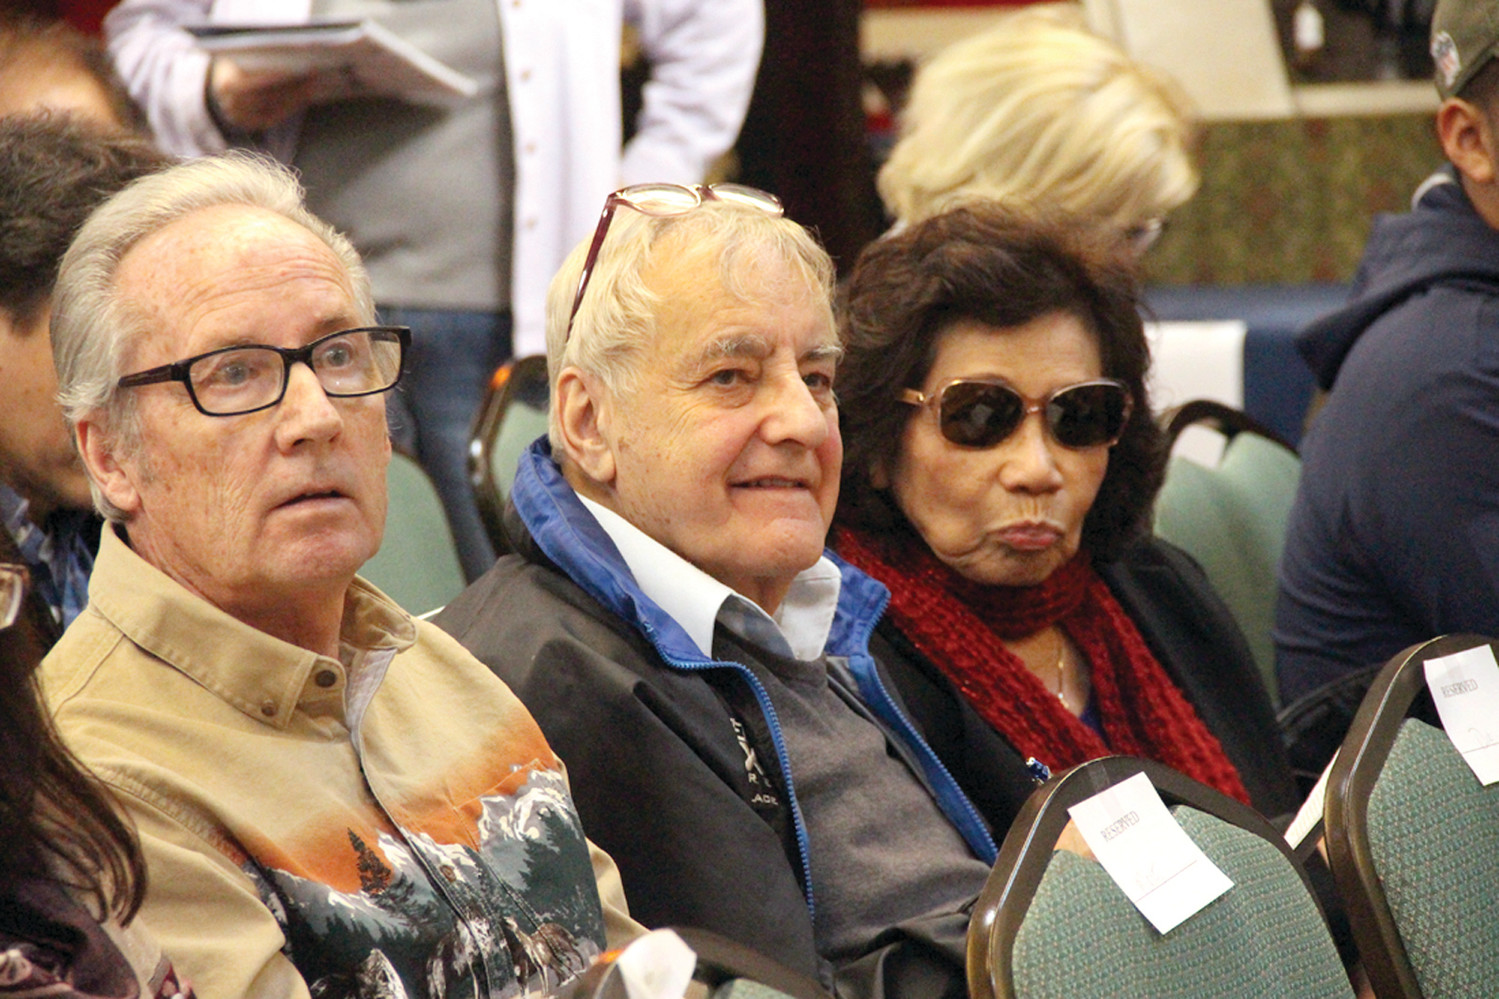 FOLLOWING THE BIDS: Philanthropist Alan Shawn Feinstein (right) and his friend, Roy Beye, at Saturday's auction at Bruneau & Co. Auctioneers.